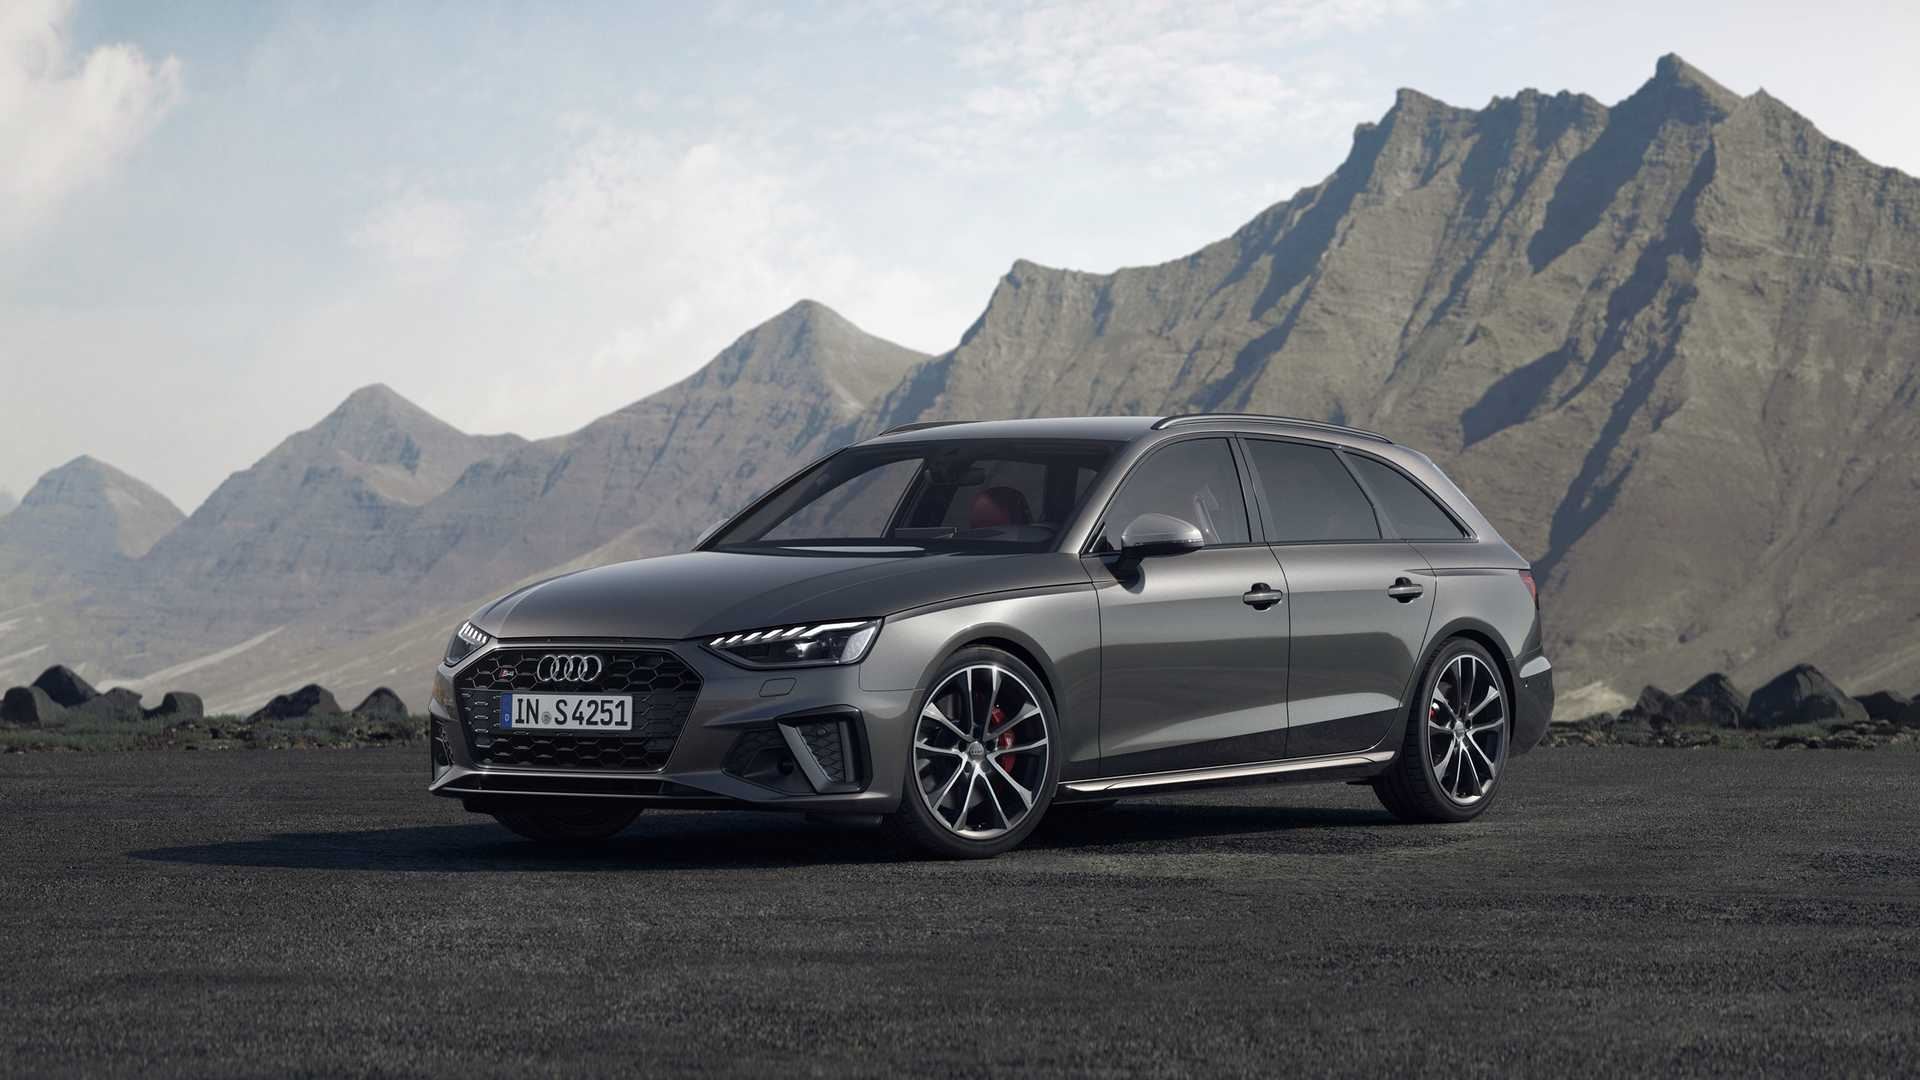 18 The Best Audi Hybrid Range 2020 Exterior